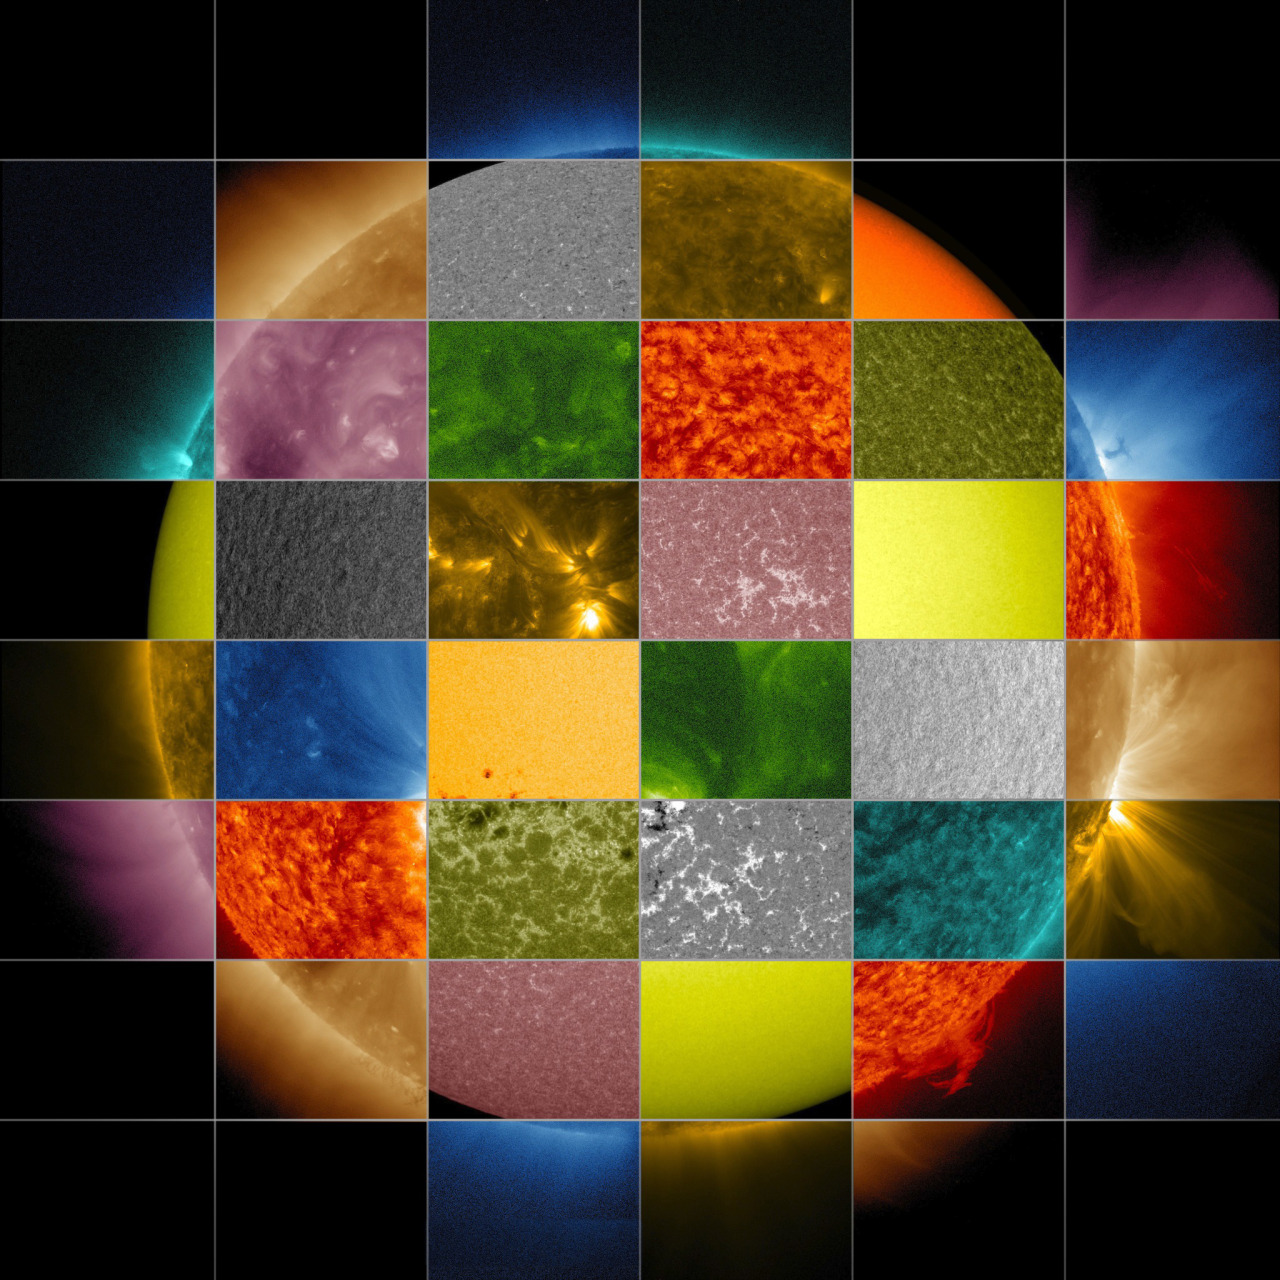 Image description: This collage of solar images from NASA's Solar Dynamics Observatory (SDO) shows how observations of the sun in different wavelengths helps highlight different aspects of the sun's surface and atmosphere. (The collage also includes images from other SDO instruments that display magnetic and Doppler information.) Credit: NASA/SDO/Goddard Space Flight Center. Learn more about why NASA scientists observe the sun in different wavelengths.